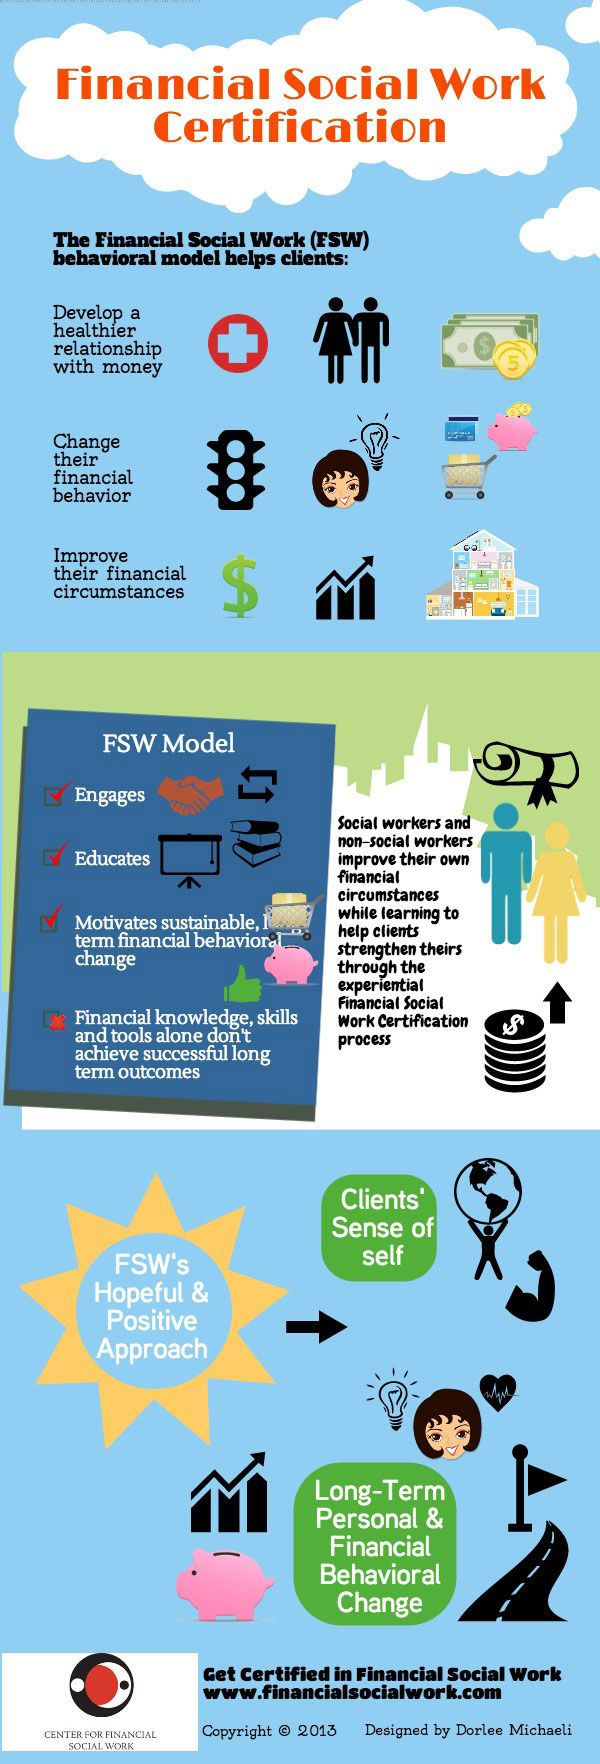 Financial Social Work Certifications Behavioral Model You Need To